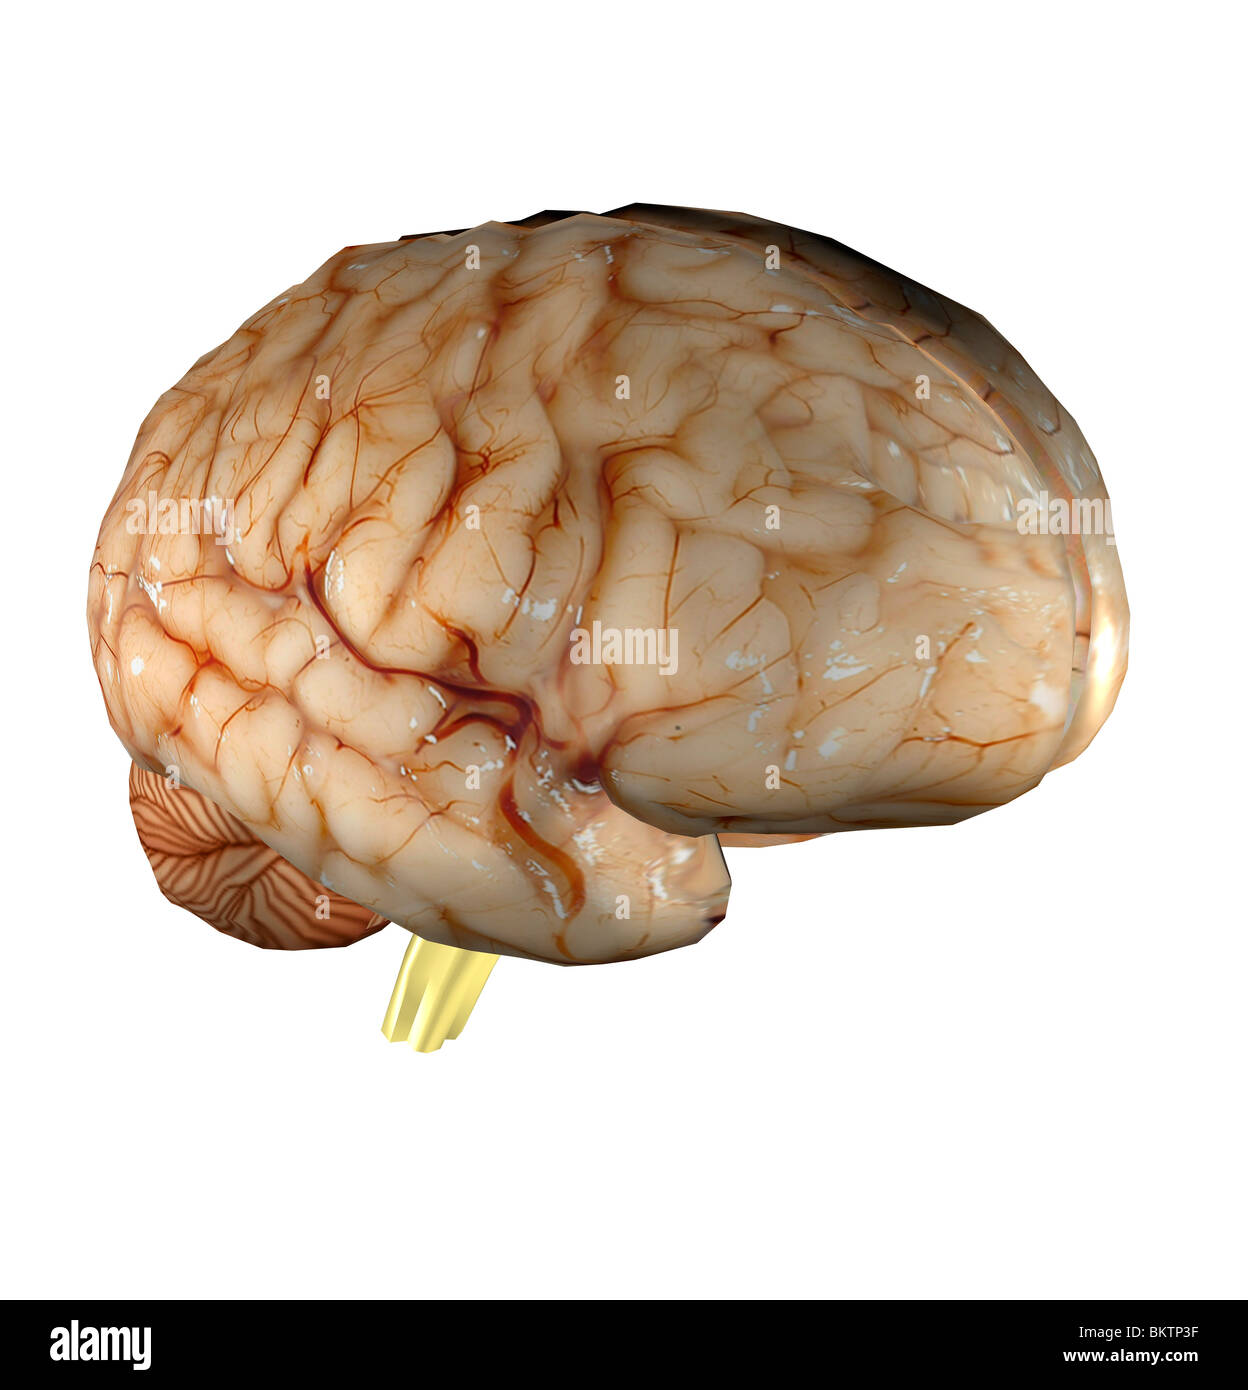 The brain is a part of the central nervous system of humans and located in the head. - Stock Image